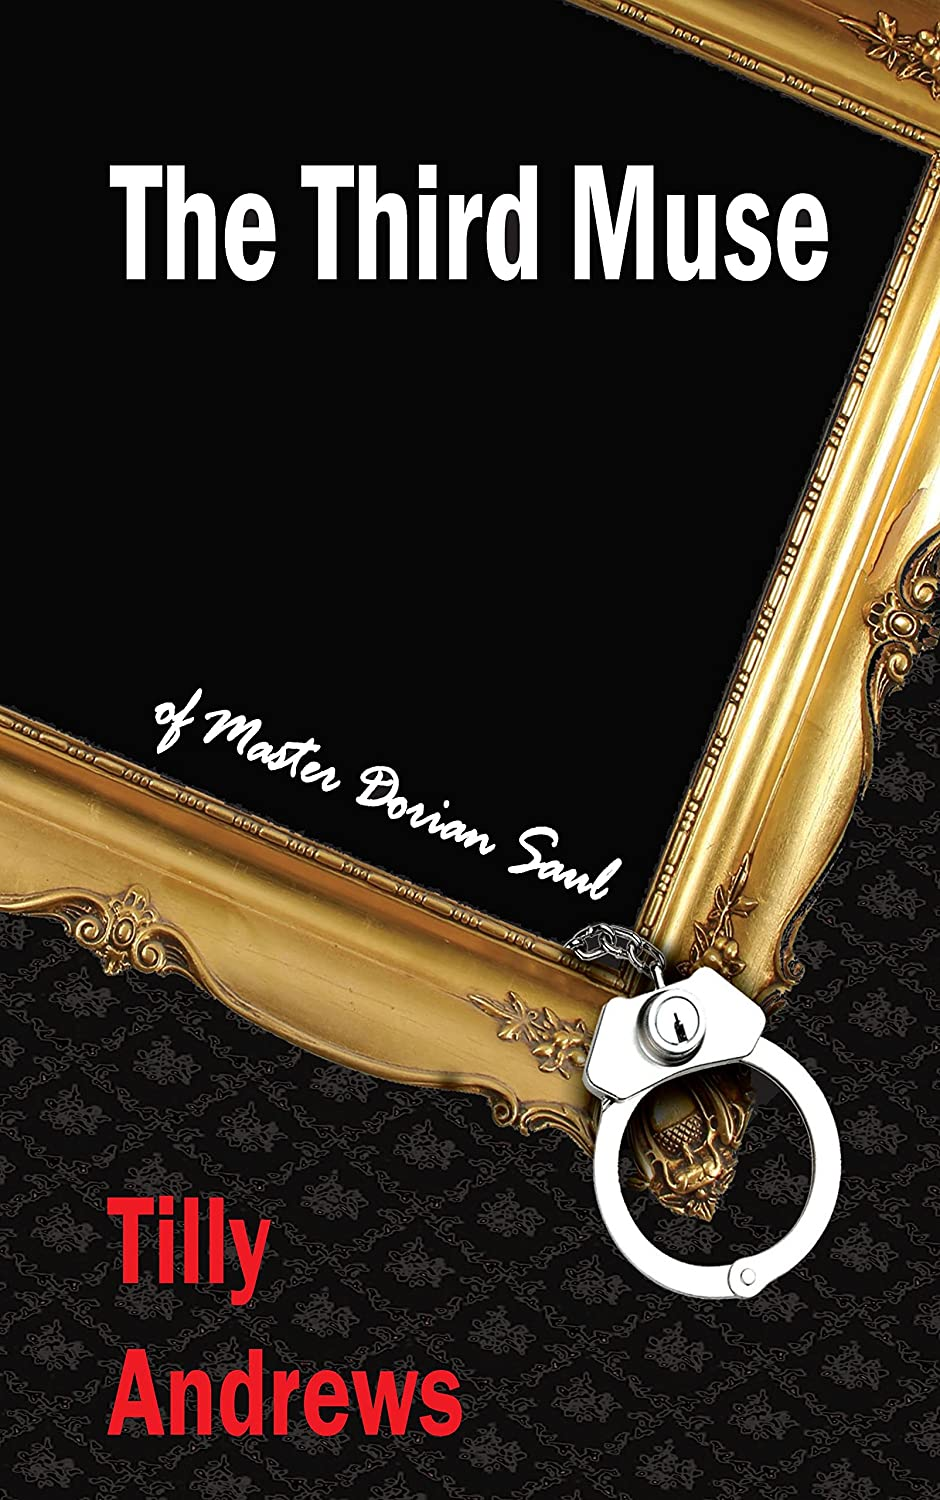 KINDLE-FINAL-cover-The-Third-Muse-copy